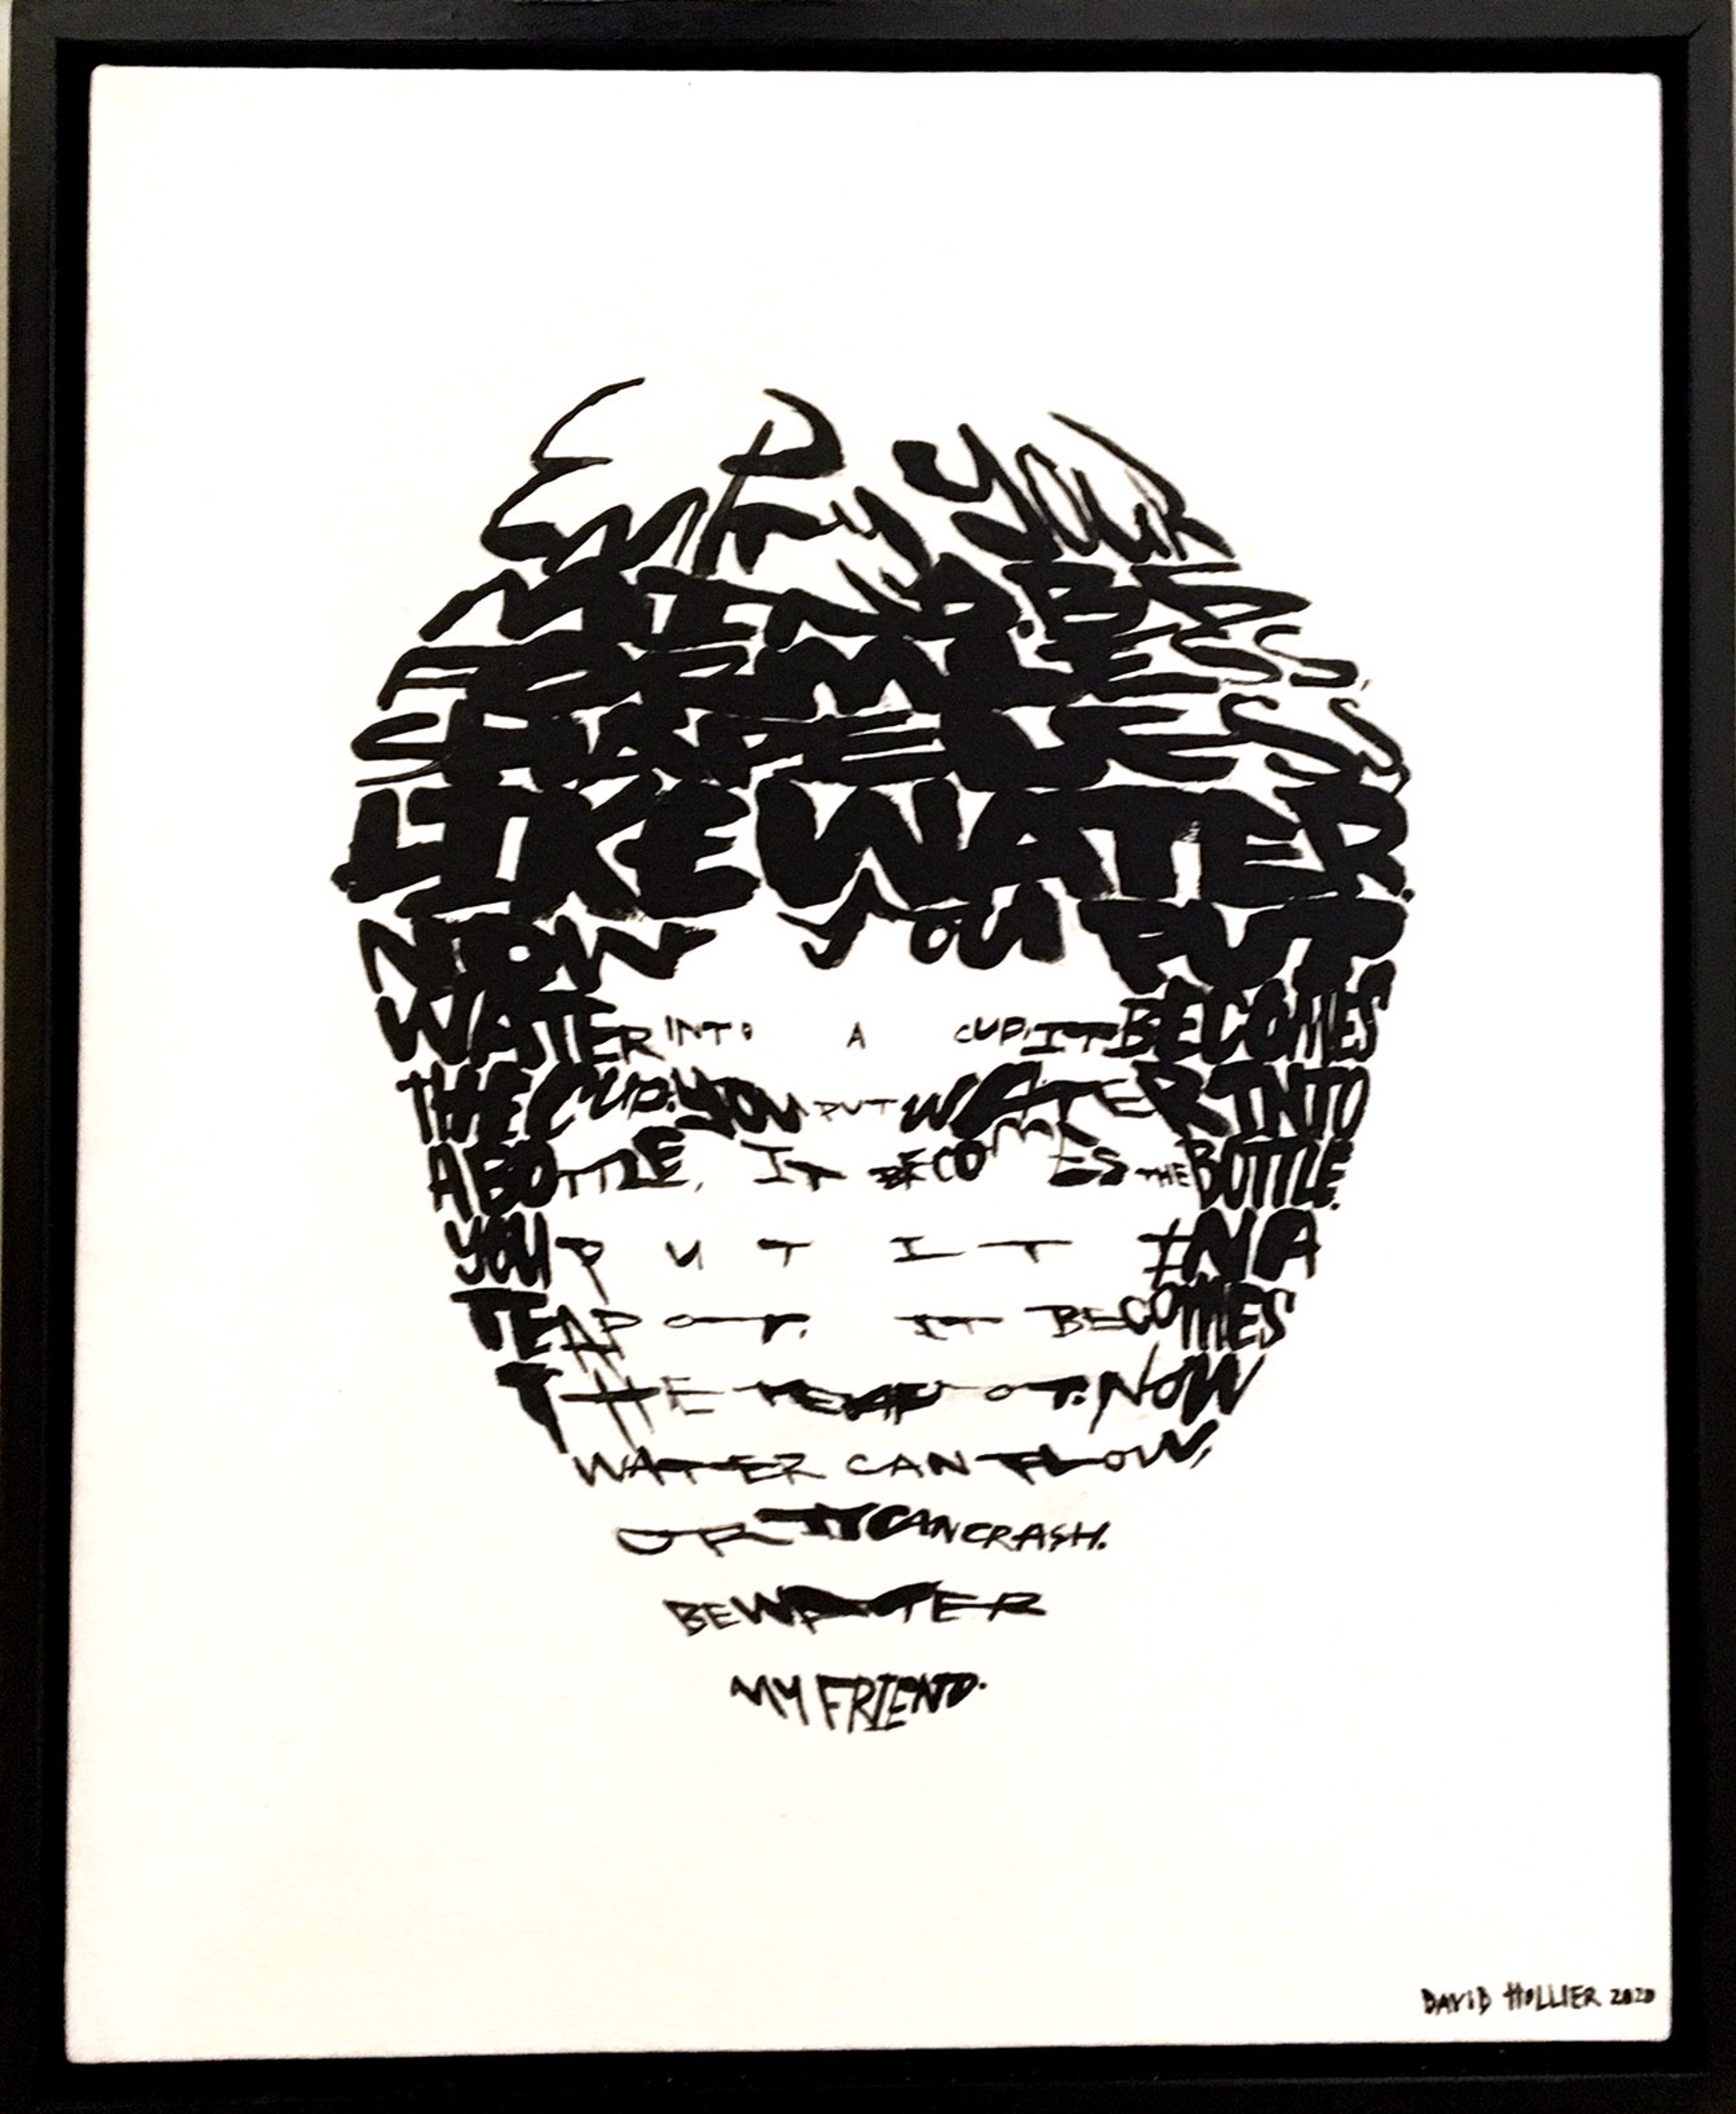 Bruce Lee - (text: 'Be Water, My Friend' quote from Bruce Lee) by David Hollier